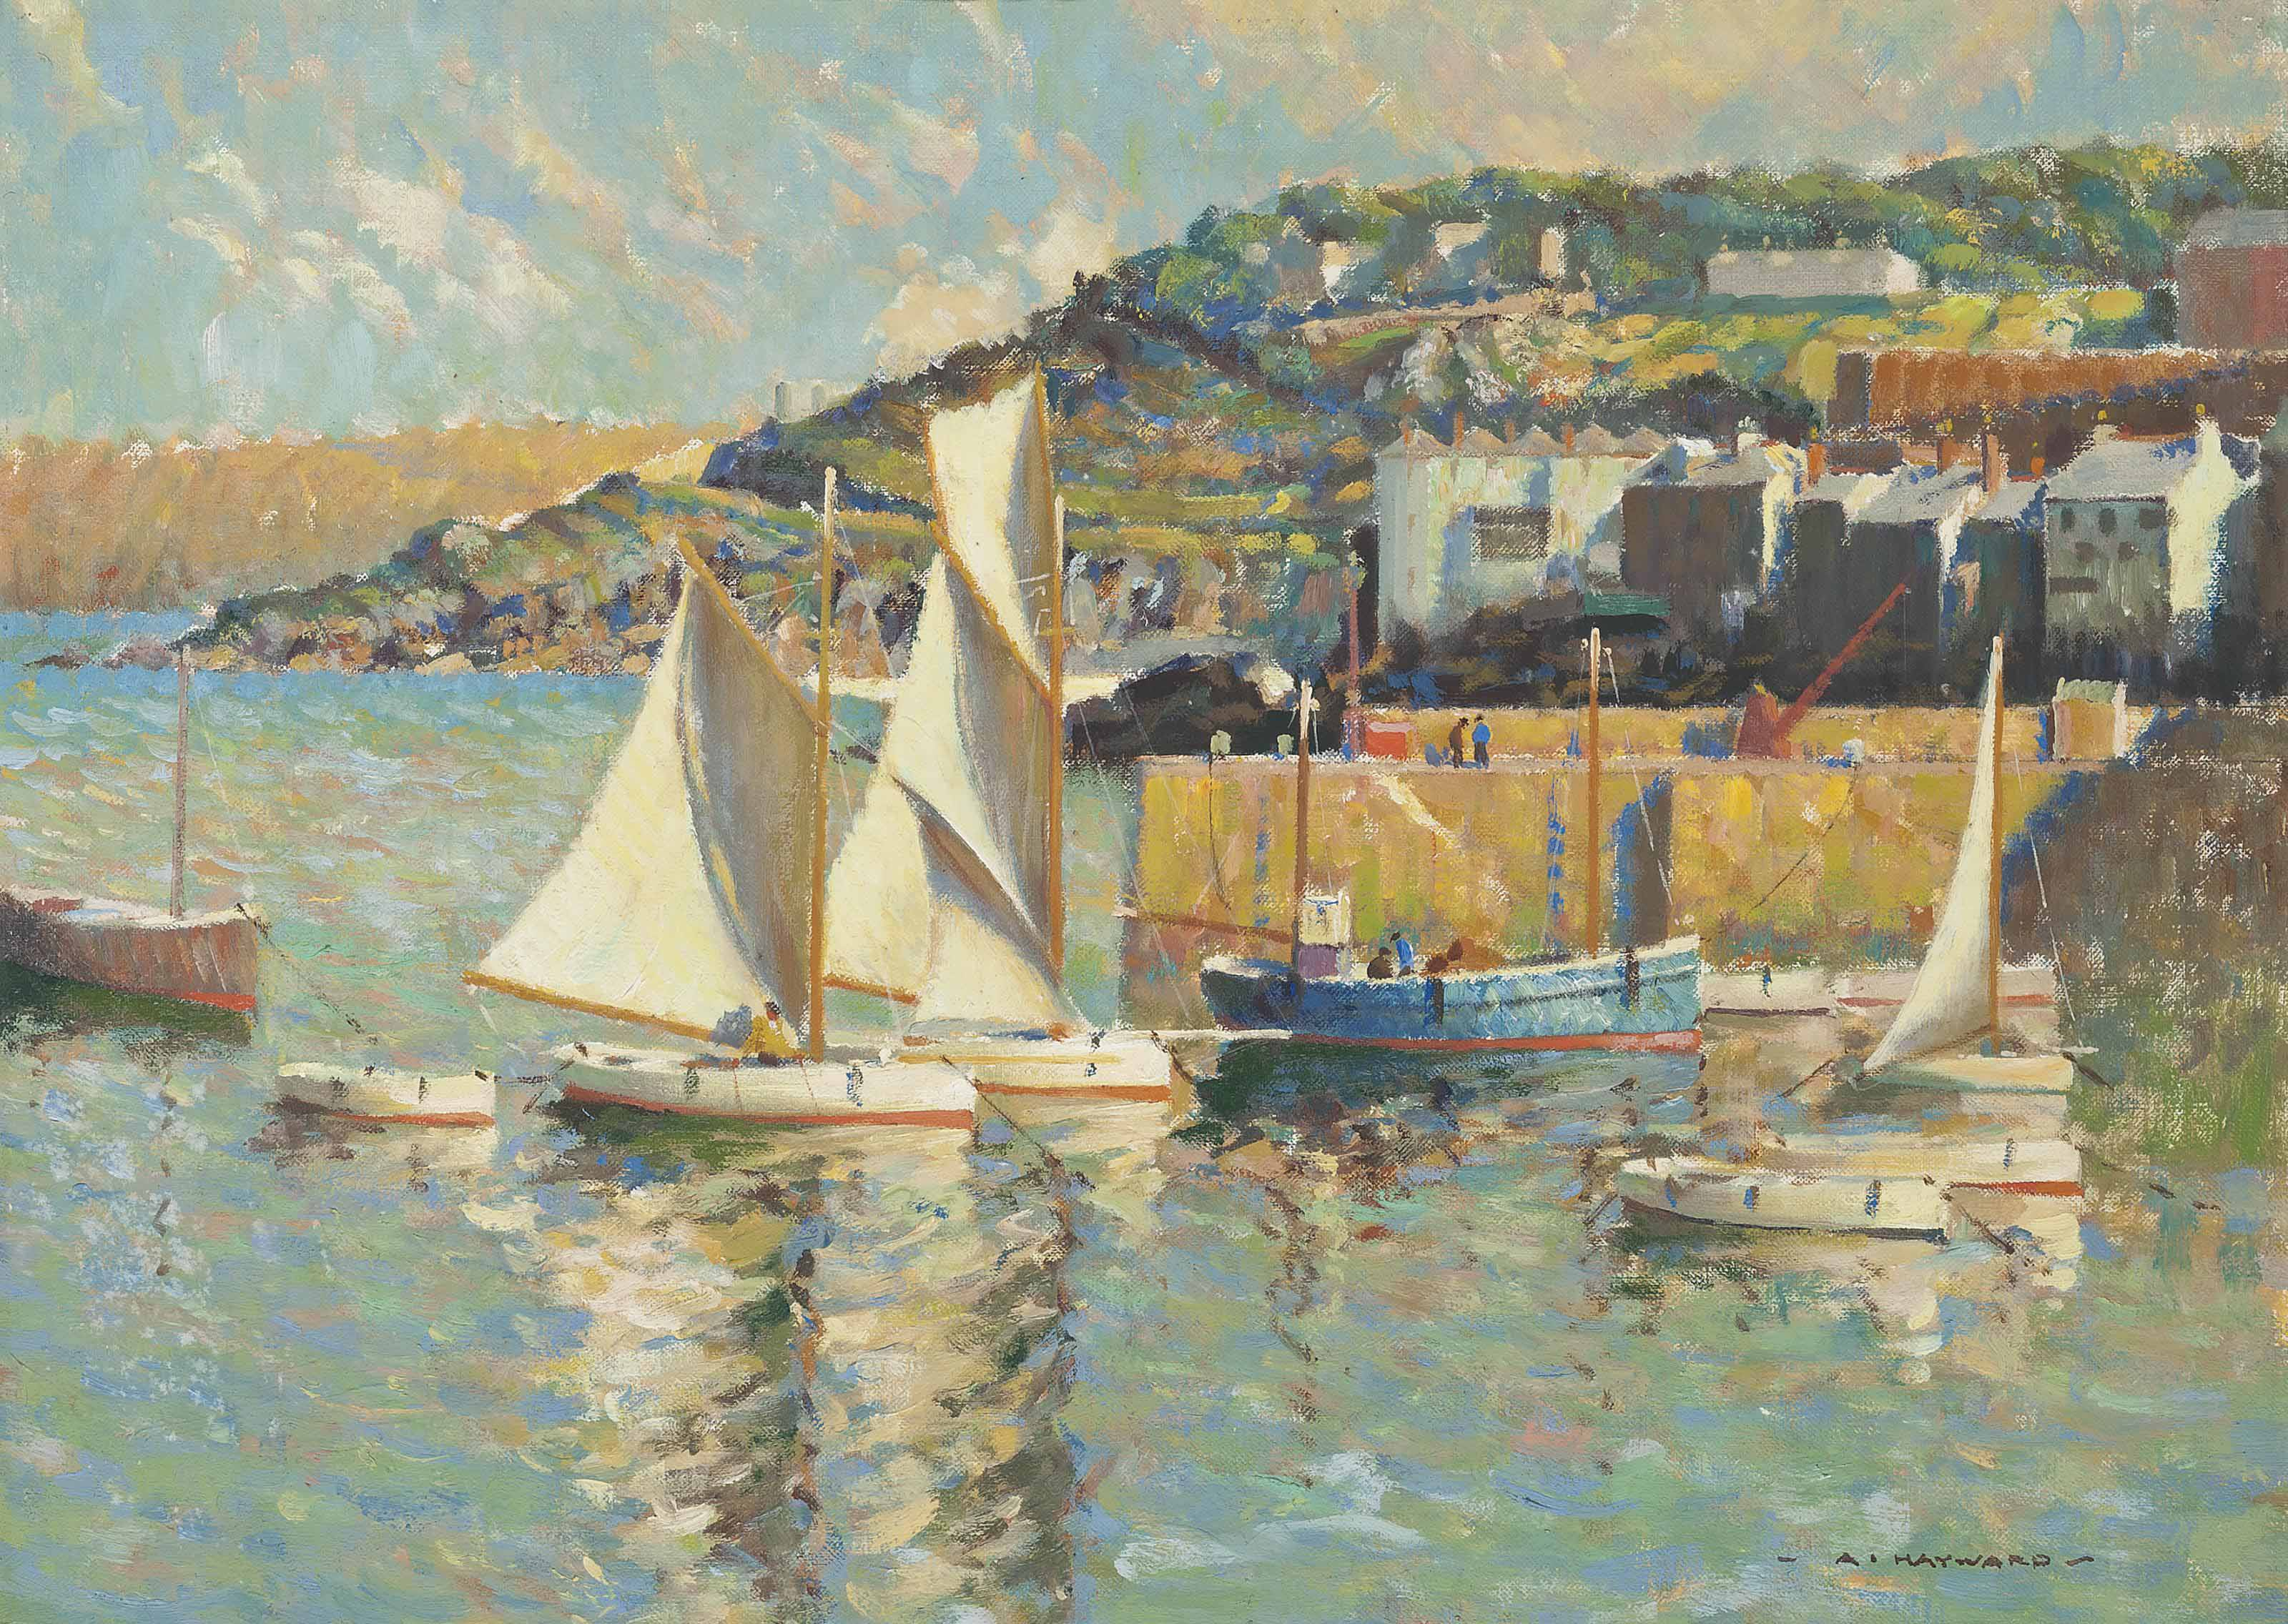 Sailing boats in the harbour of St. Ives